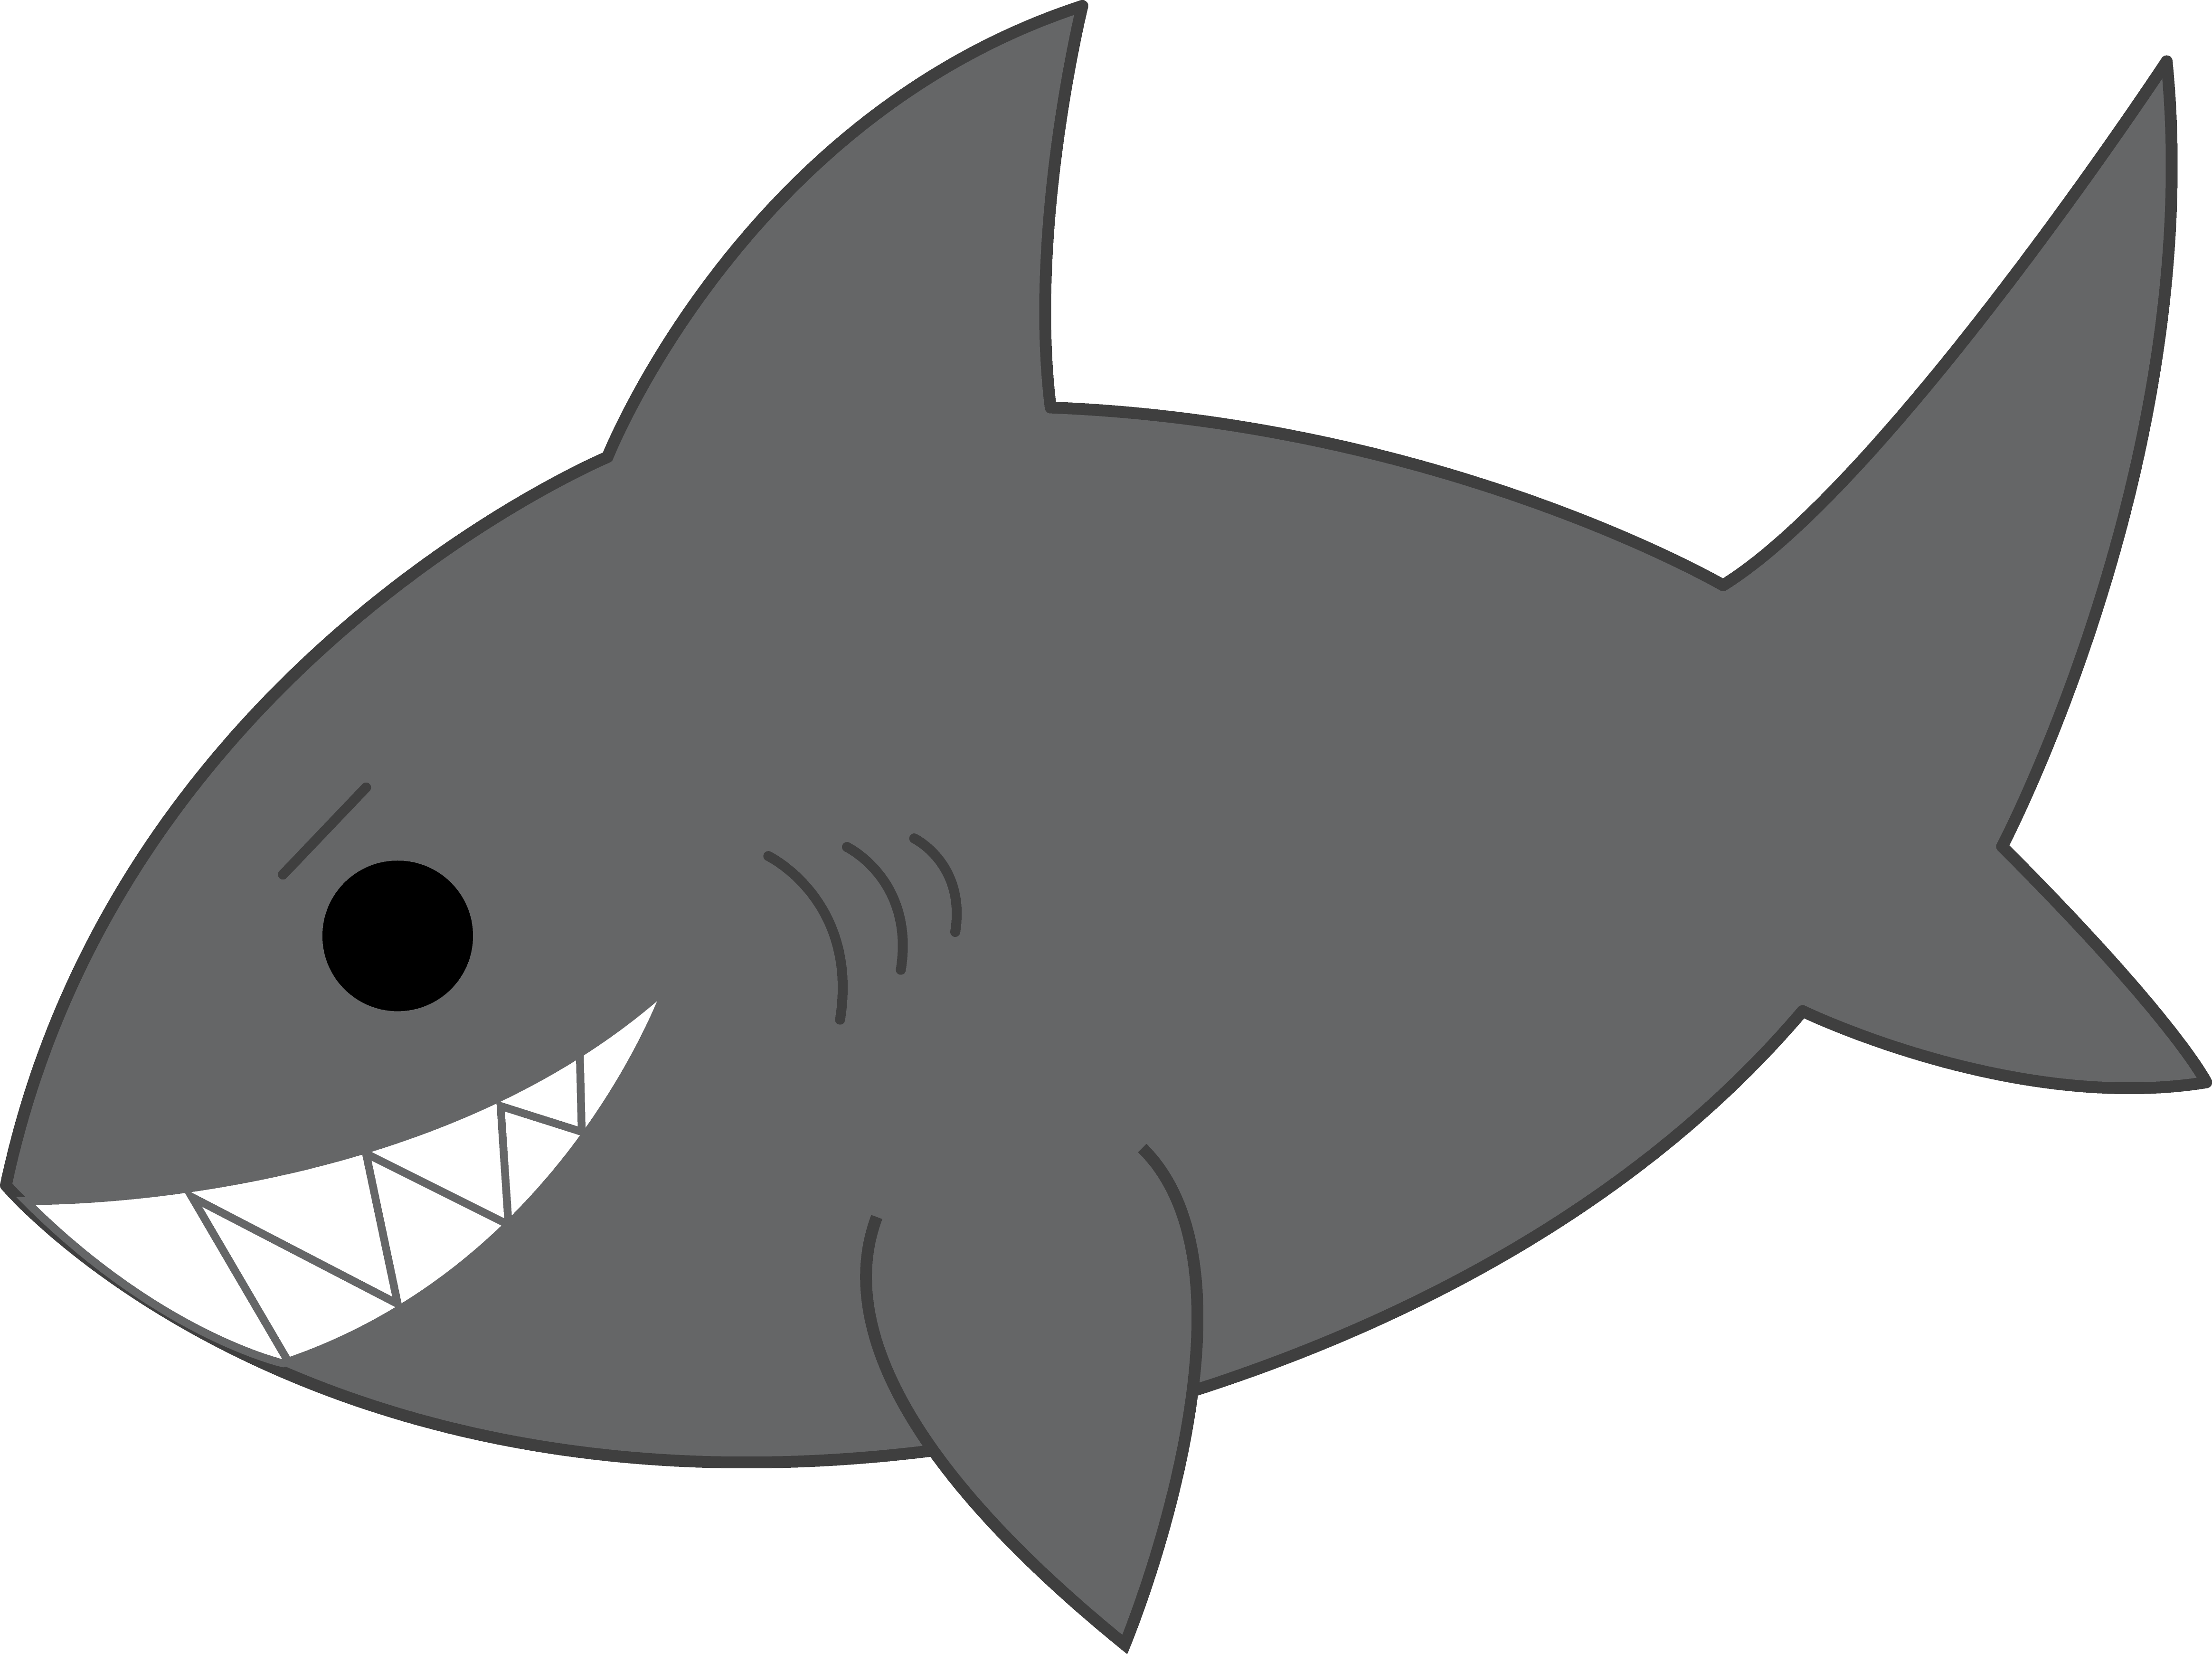 Grey fish clipart picture royalty free Cute Shark Clip Art | Clipart Panda - Free Clipart Images picture royalty free